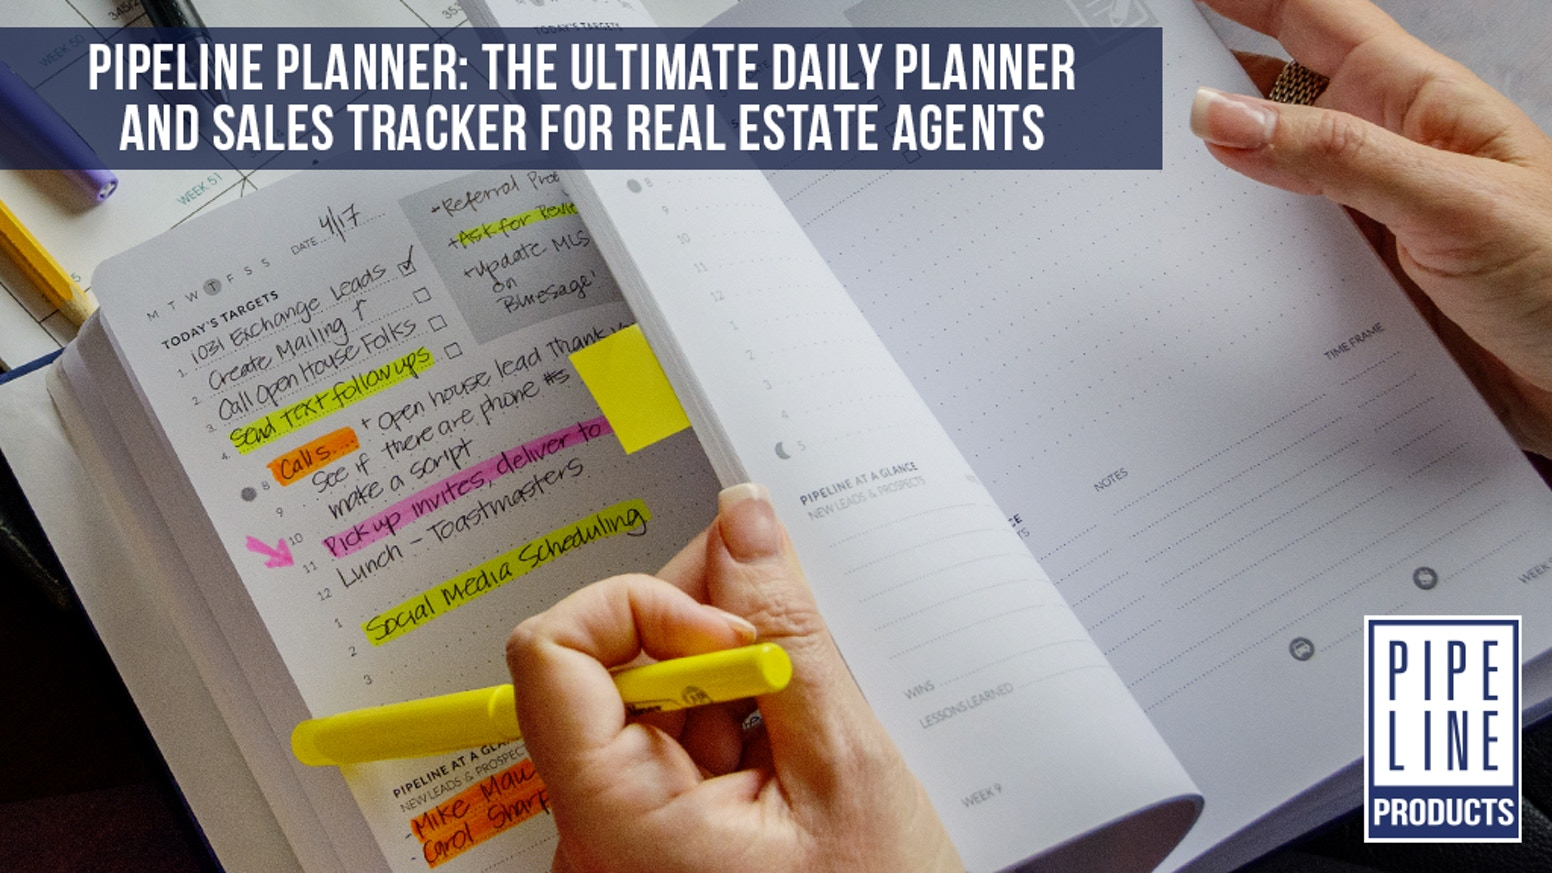 Pipeline Planner: Real Estate Agent Planner & Sales Tracker by